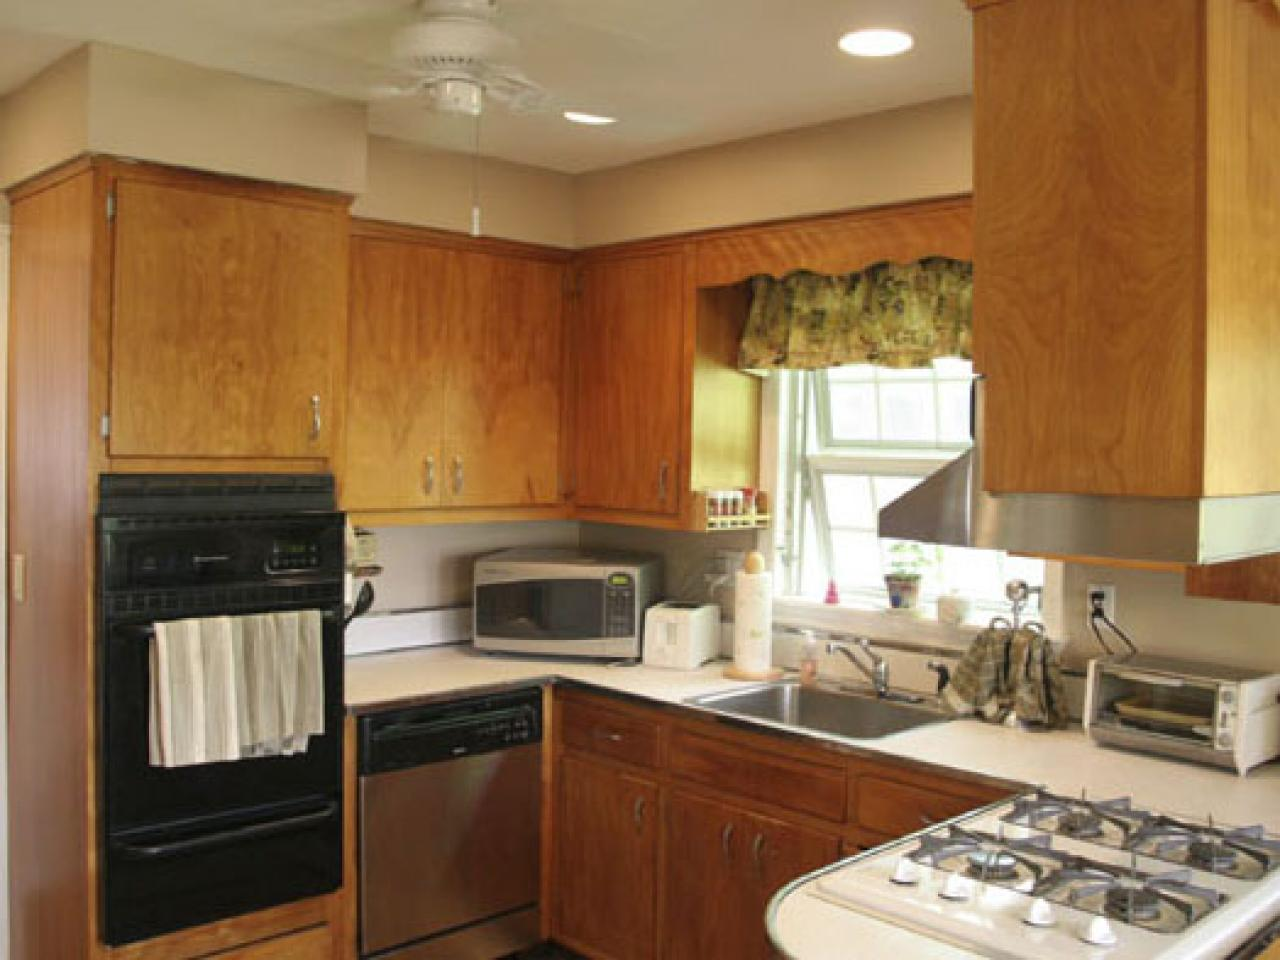 New staining kitchen cabinets materials and tools: ugqhywe